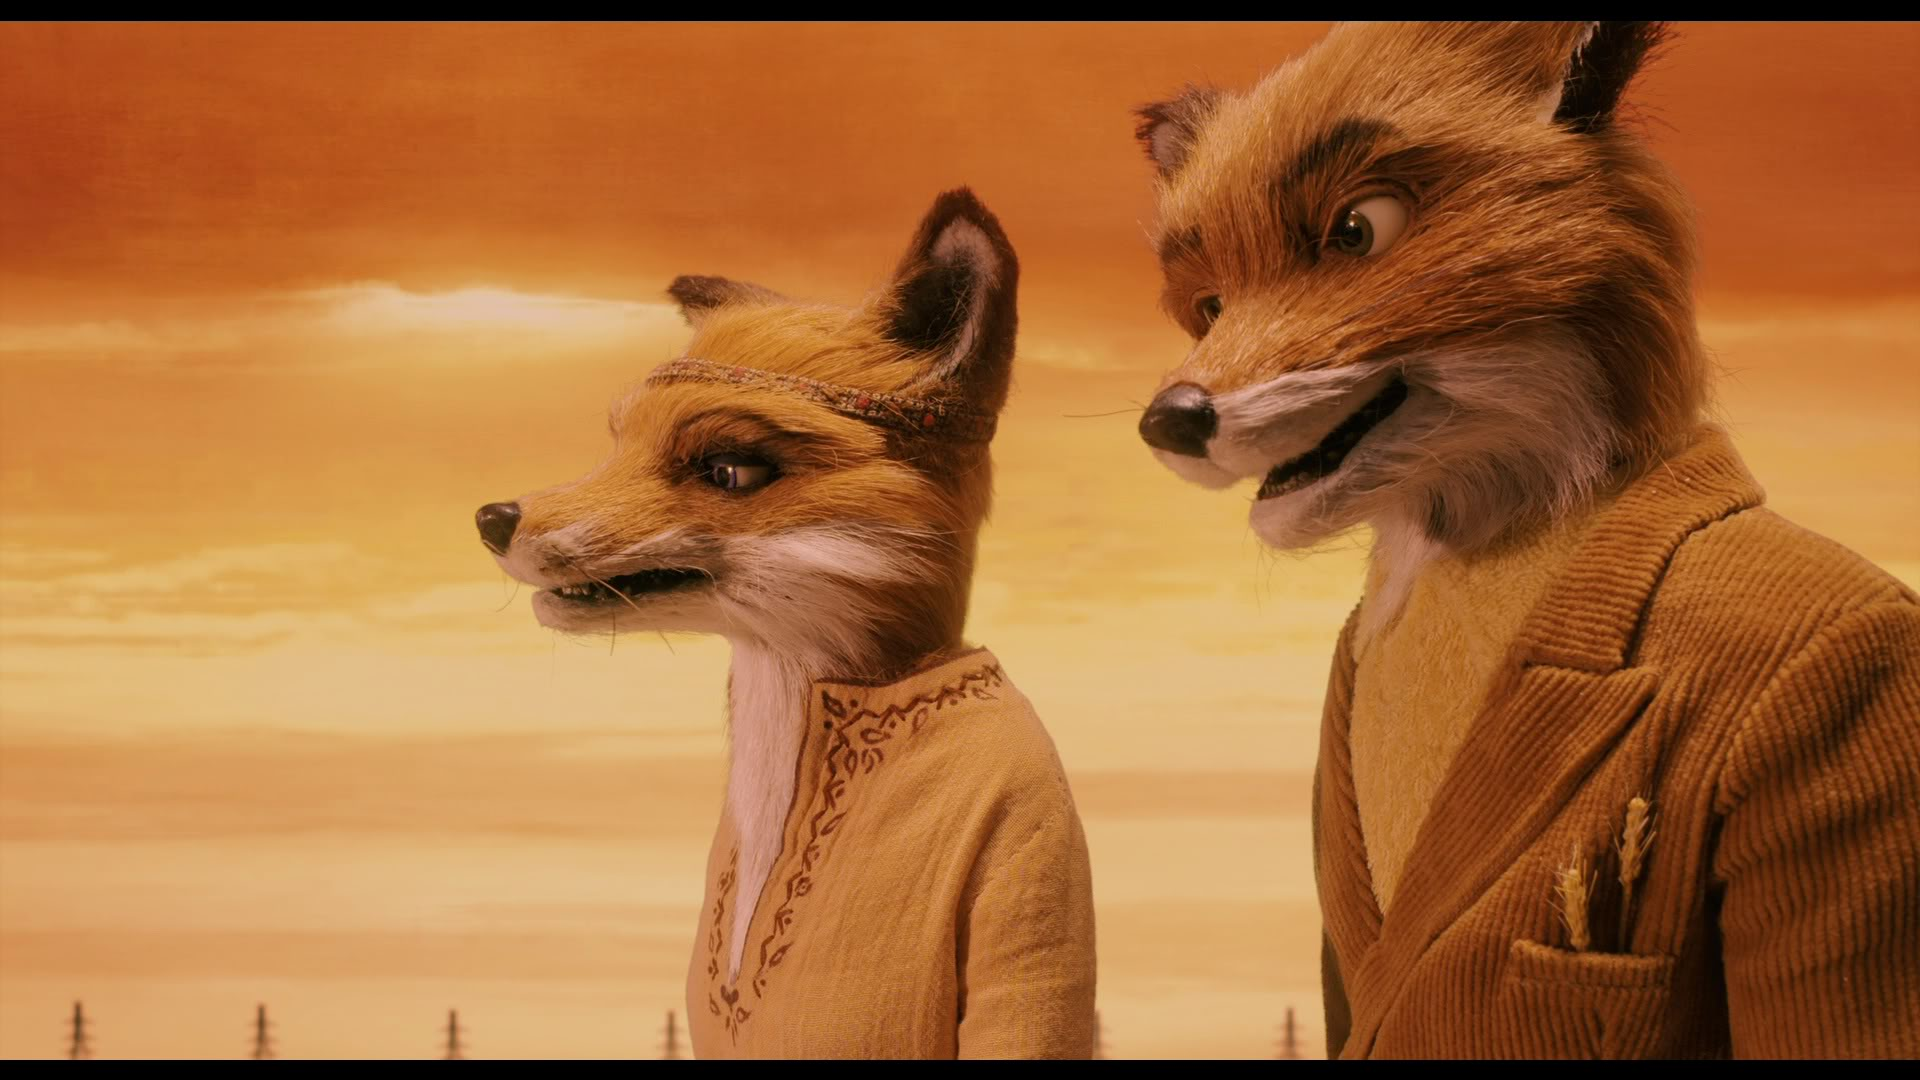 fantastic mr fox Visually and conceptually, fantastic mr fox doesn't remotely resemble anything wes anderson has tackled before: it's a manic kids' movie, it's stop-motion animated, and it's his first film based on an outside source—a minor story by charlie and the chocolate factory author roald dahl.